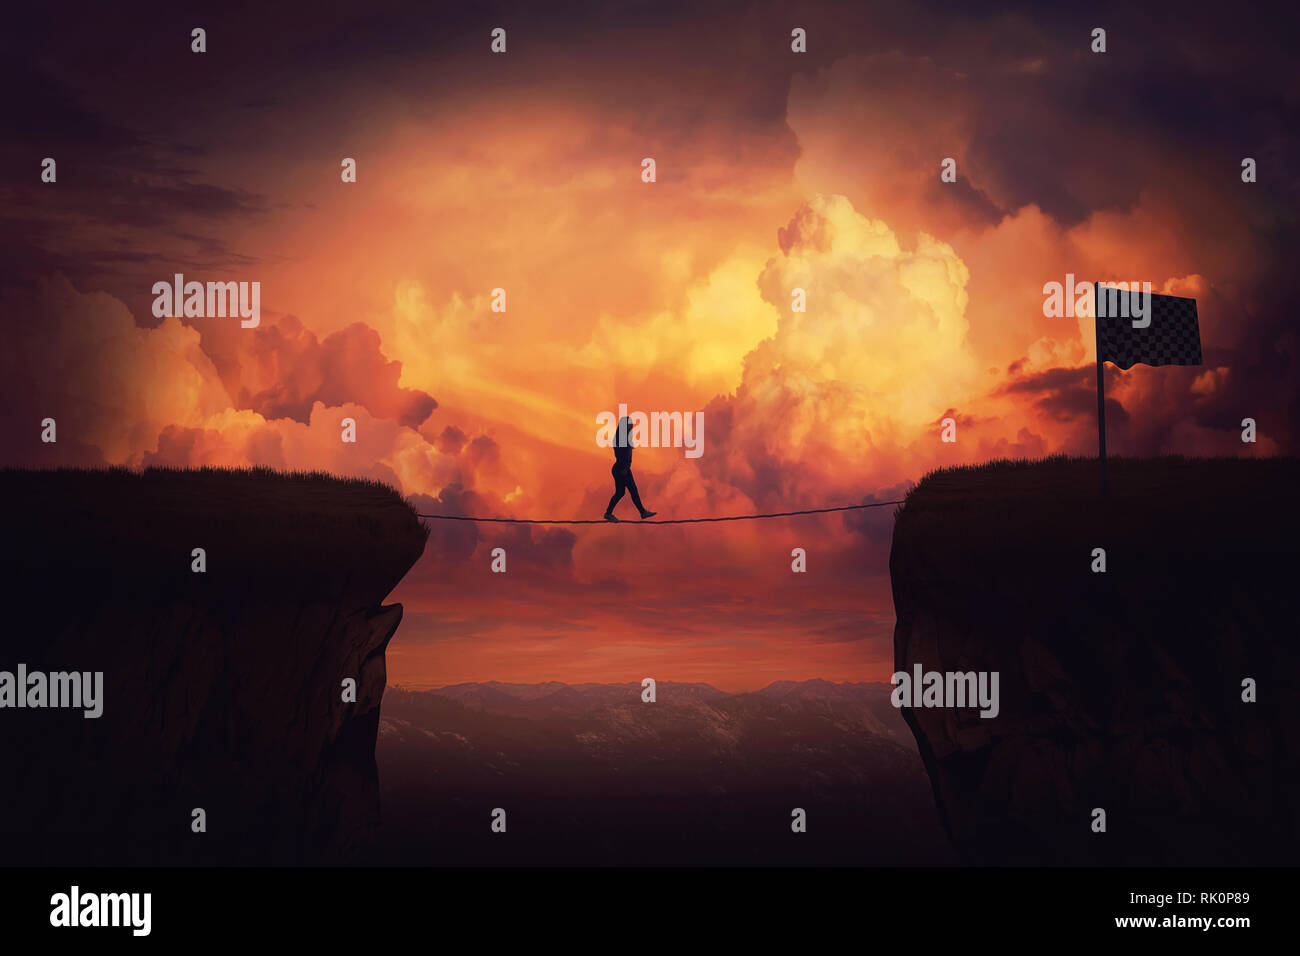 Surreal challenge overcome as woman cross chasm conquering obstacle balancing on slackline rope above the clouds. Way to finish, reach the flag over s - Stock Image